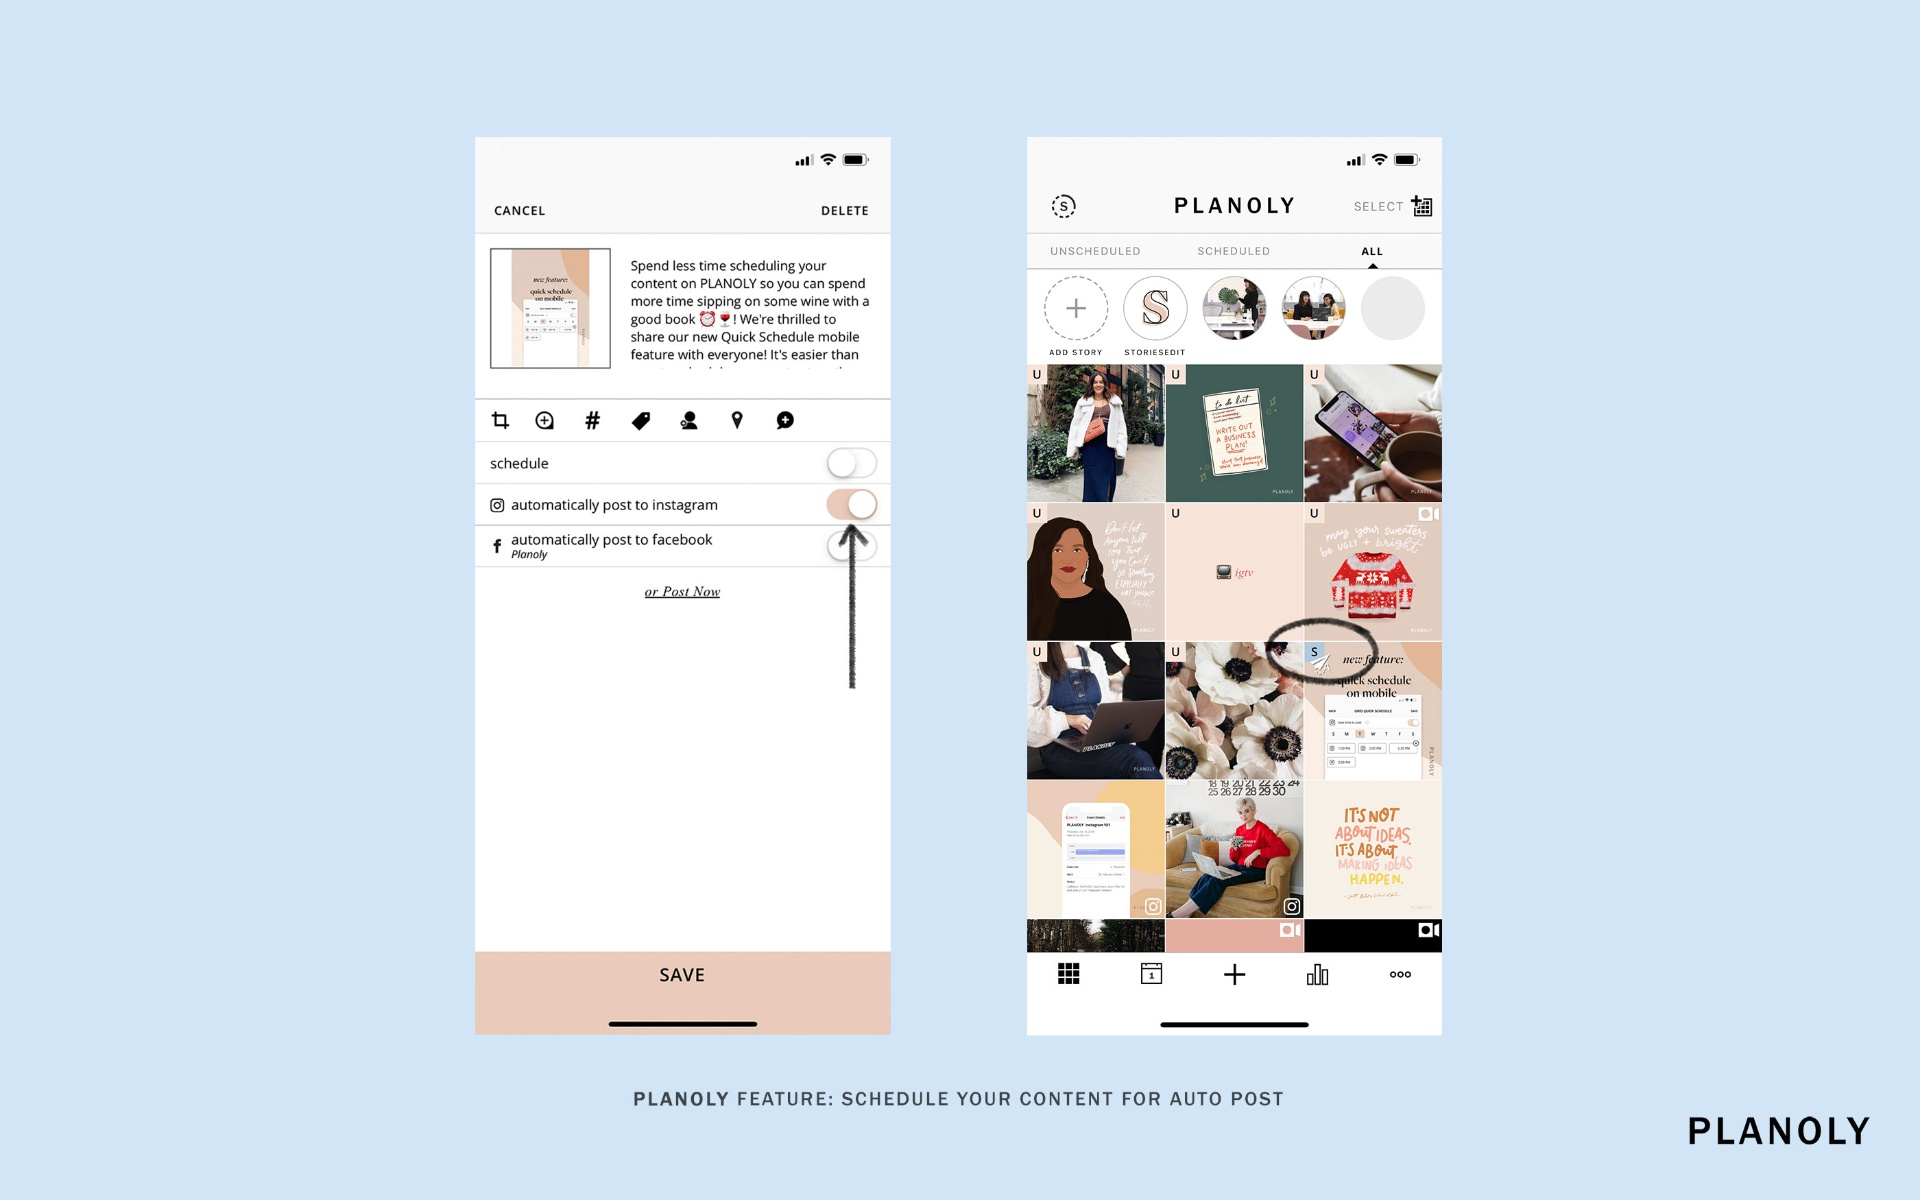 Planoly - Check Out How to Schedule Posts on Pinterest and Instagram with this App